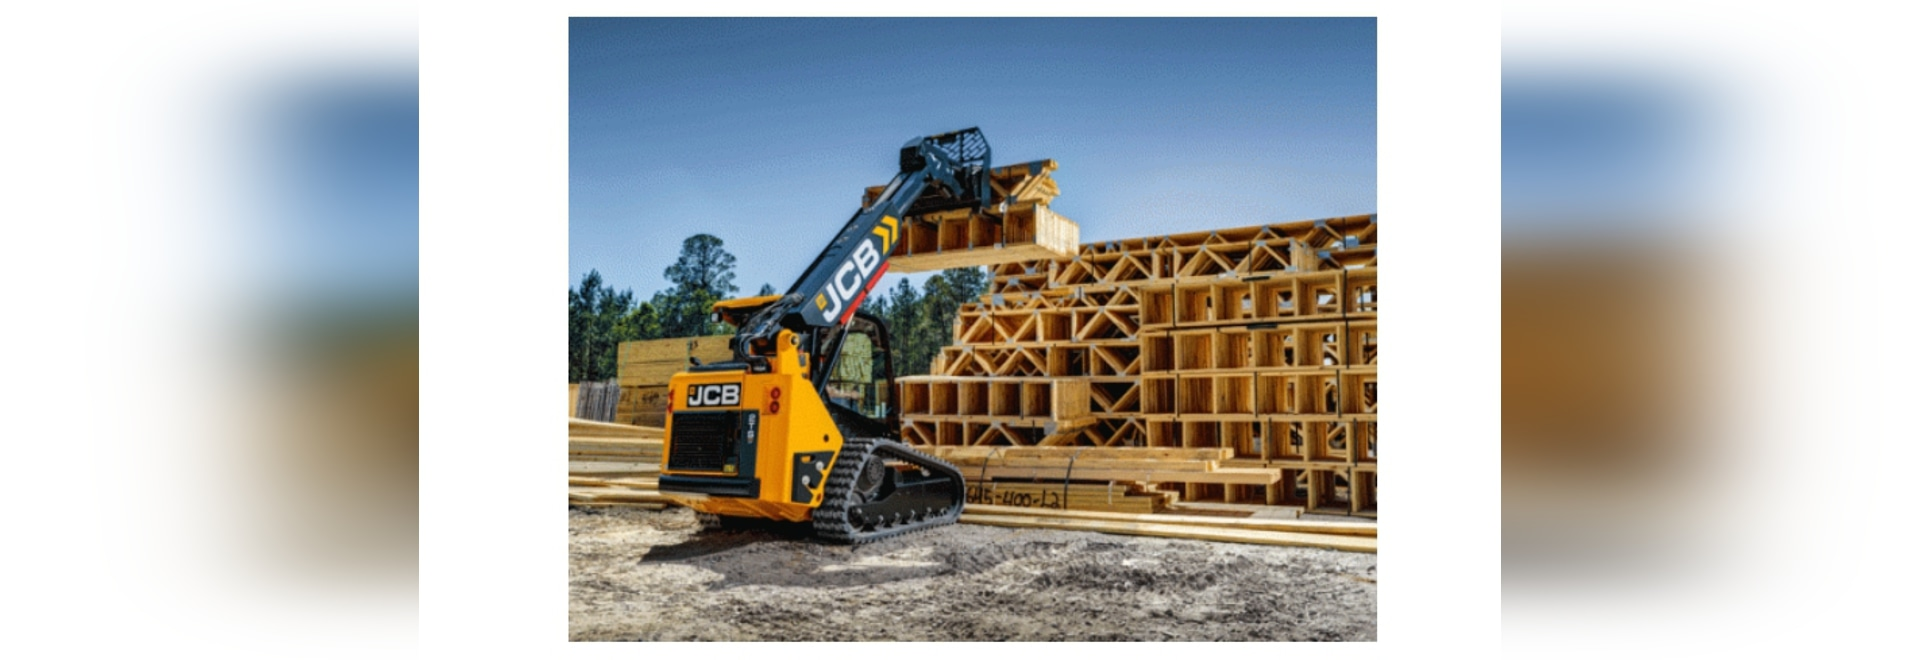 Rated operating capacity for the JCB 2TS-7T Teleskid is 1,140 pounds with the boom fully extended.